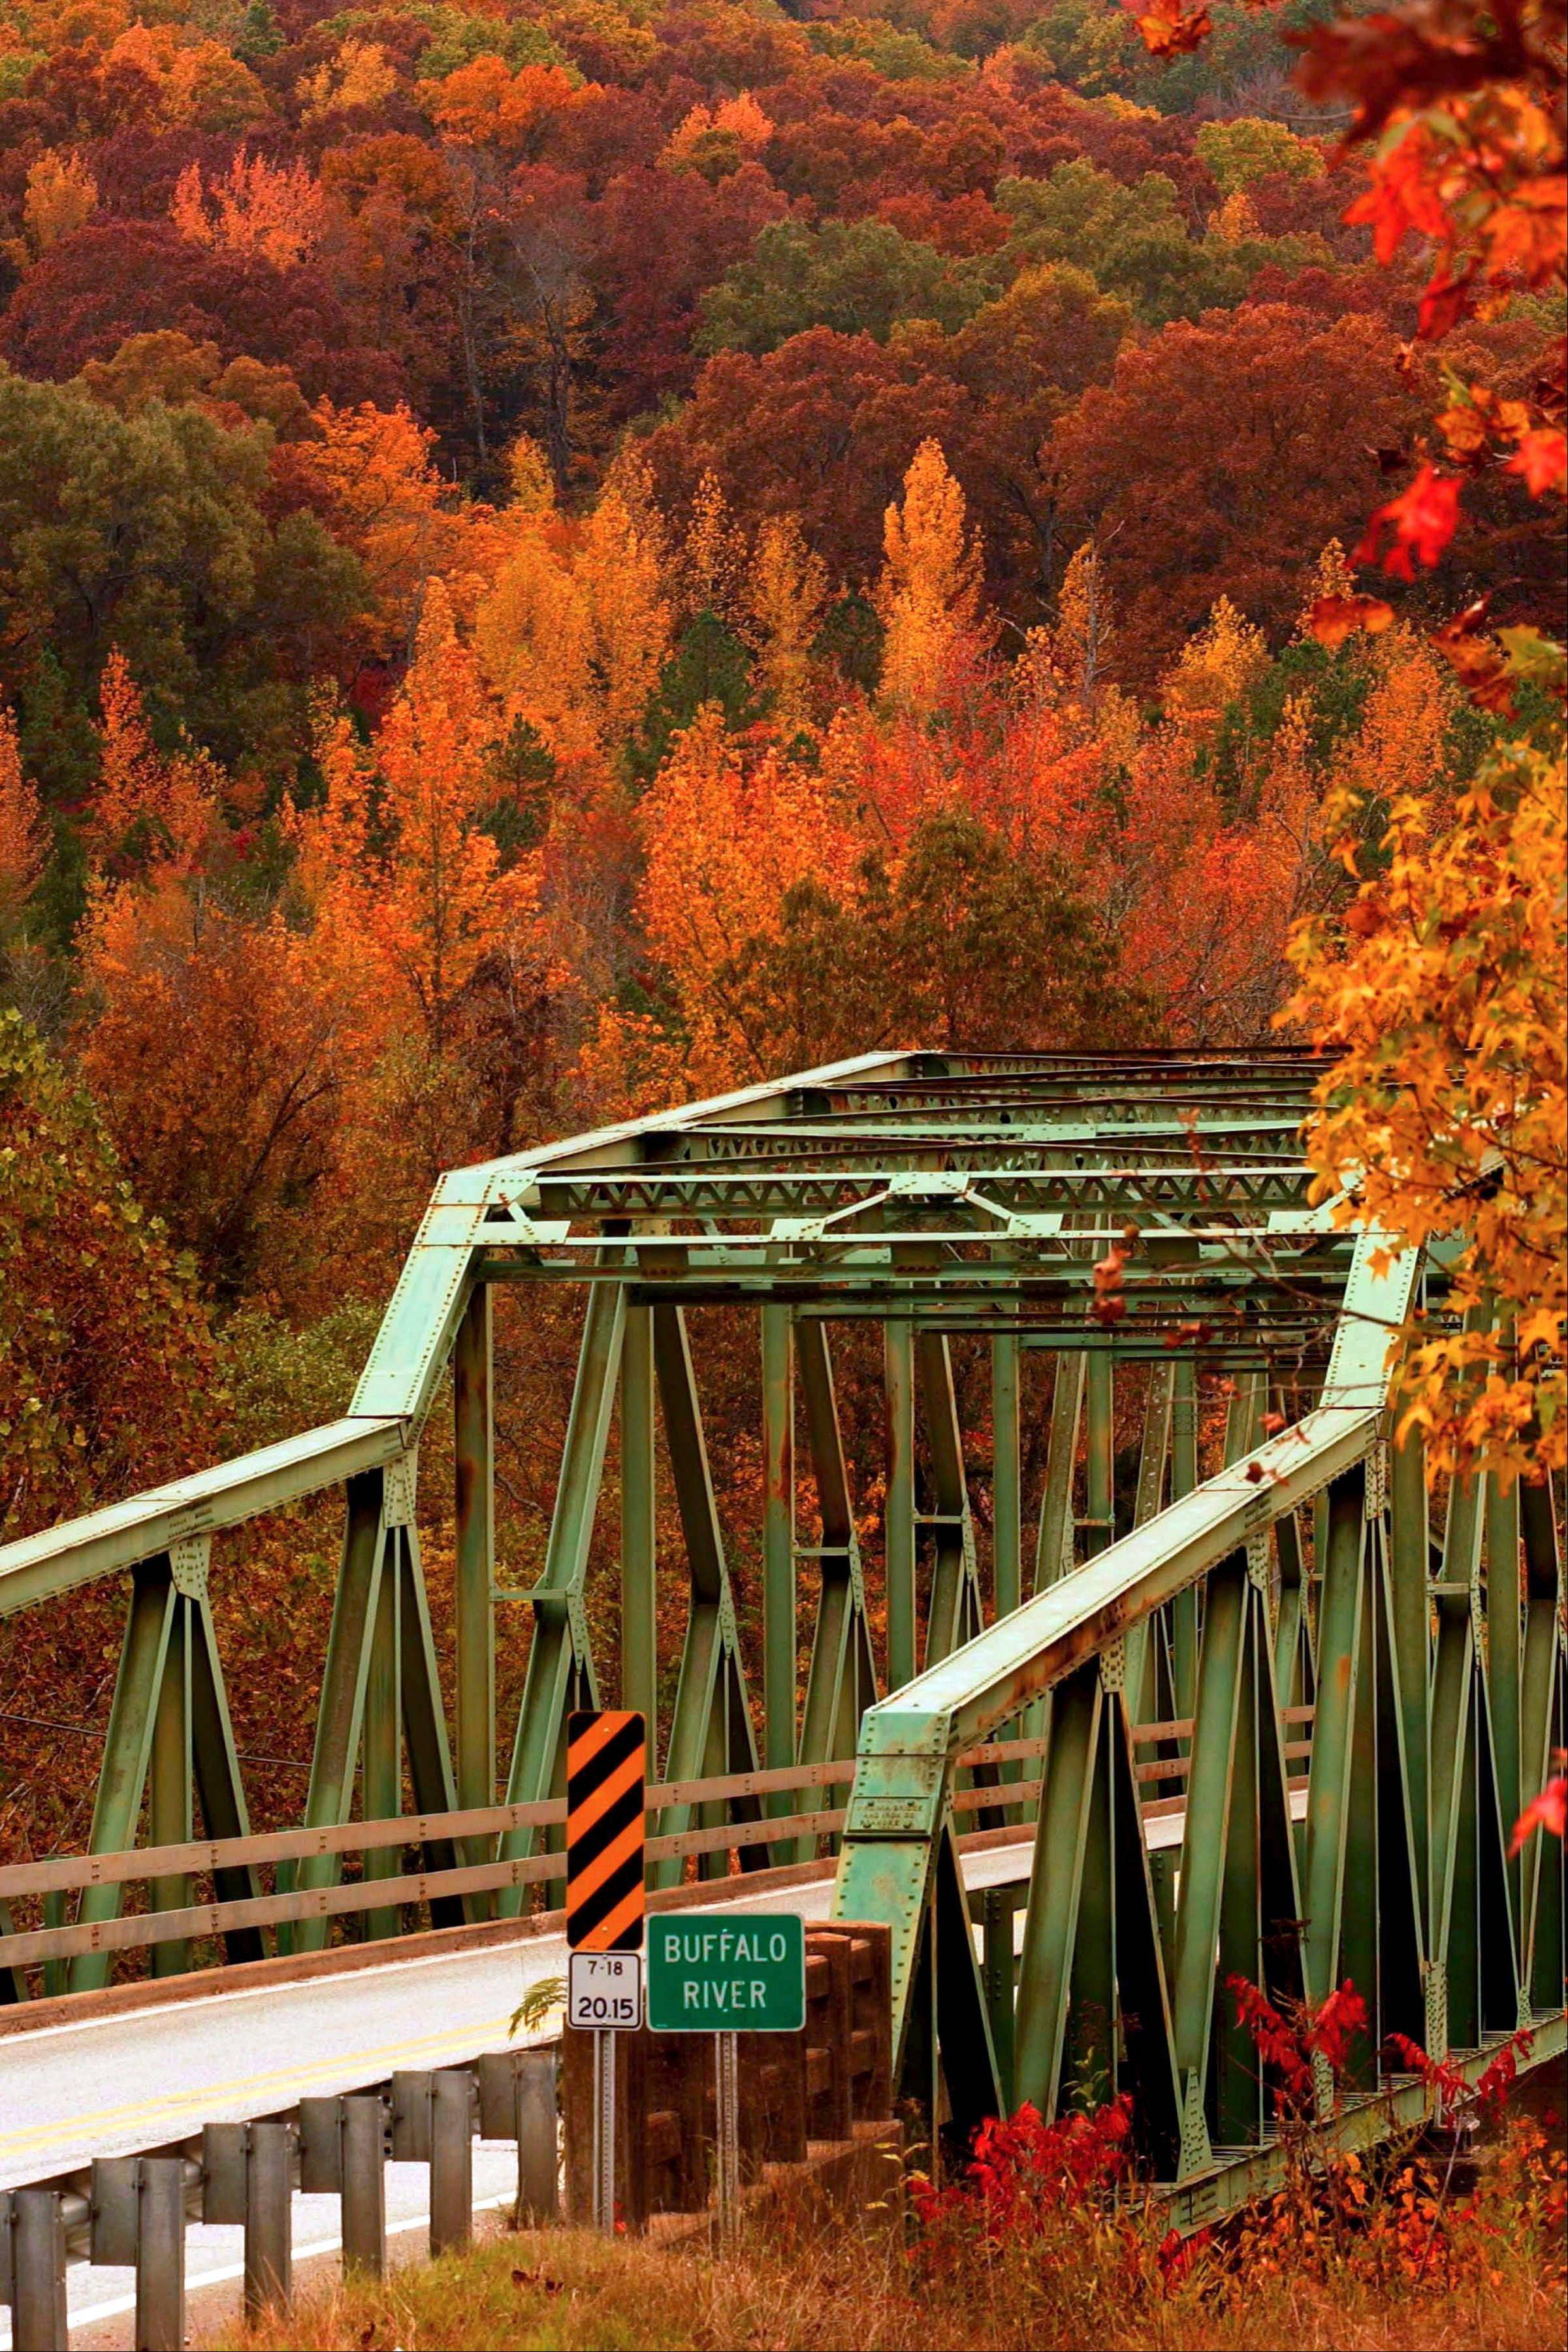 Take in fall foliage on Highway 7 along the Buffalo River in Pruitt, Ark. The changing leaves of state's hickory, oak and sweet gum trees lure thousands of visitors every fall.